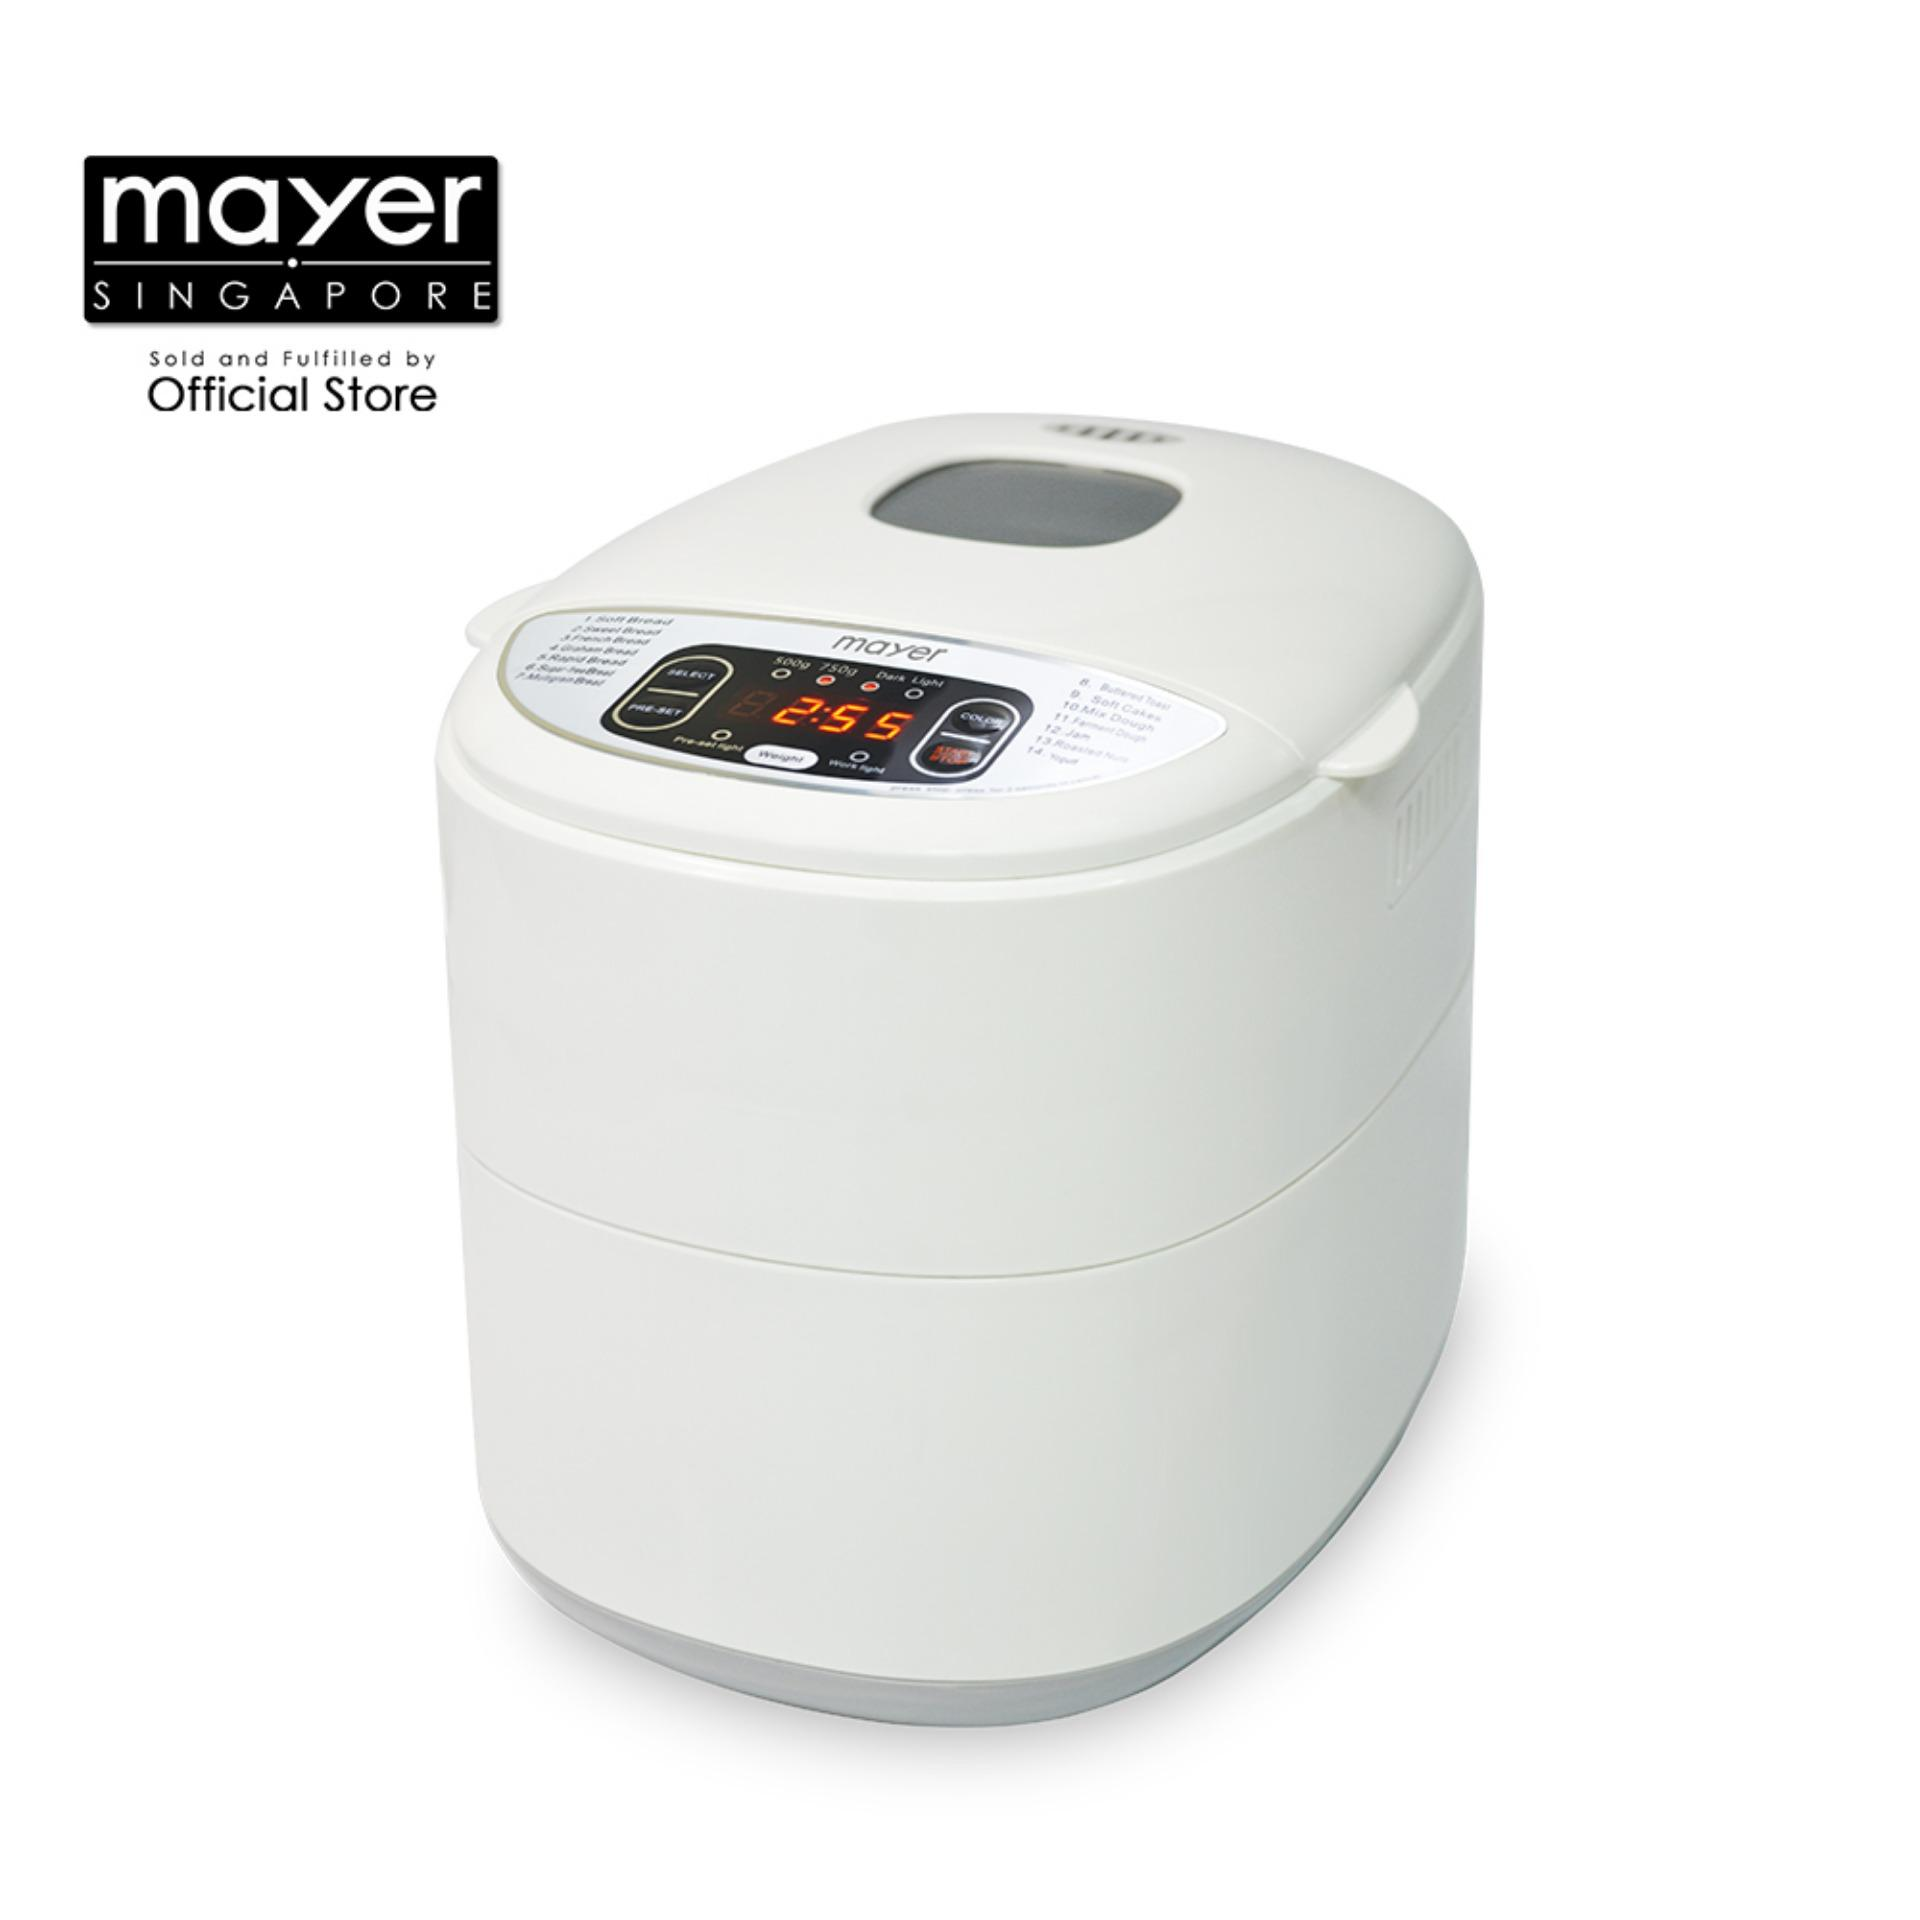 Mayer Mmbm12 Bread Maker 750g White *authorized Distributor* By Mayer Marketing Pte Ltd.